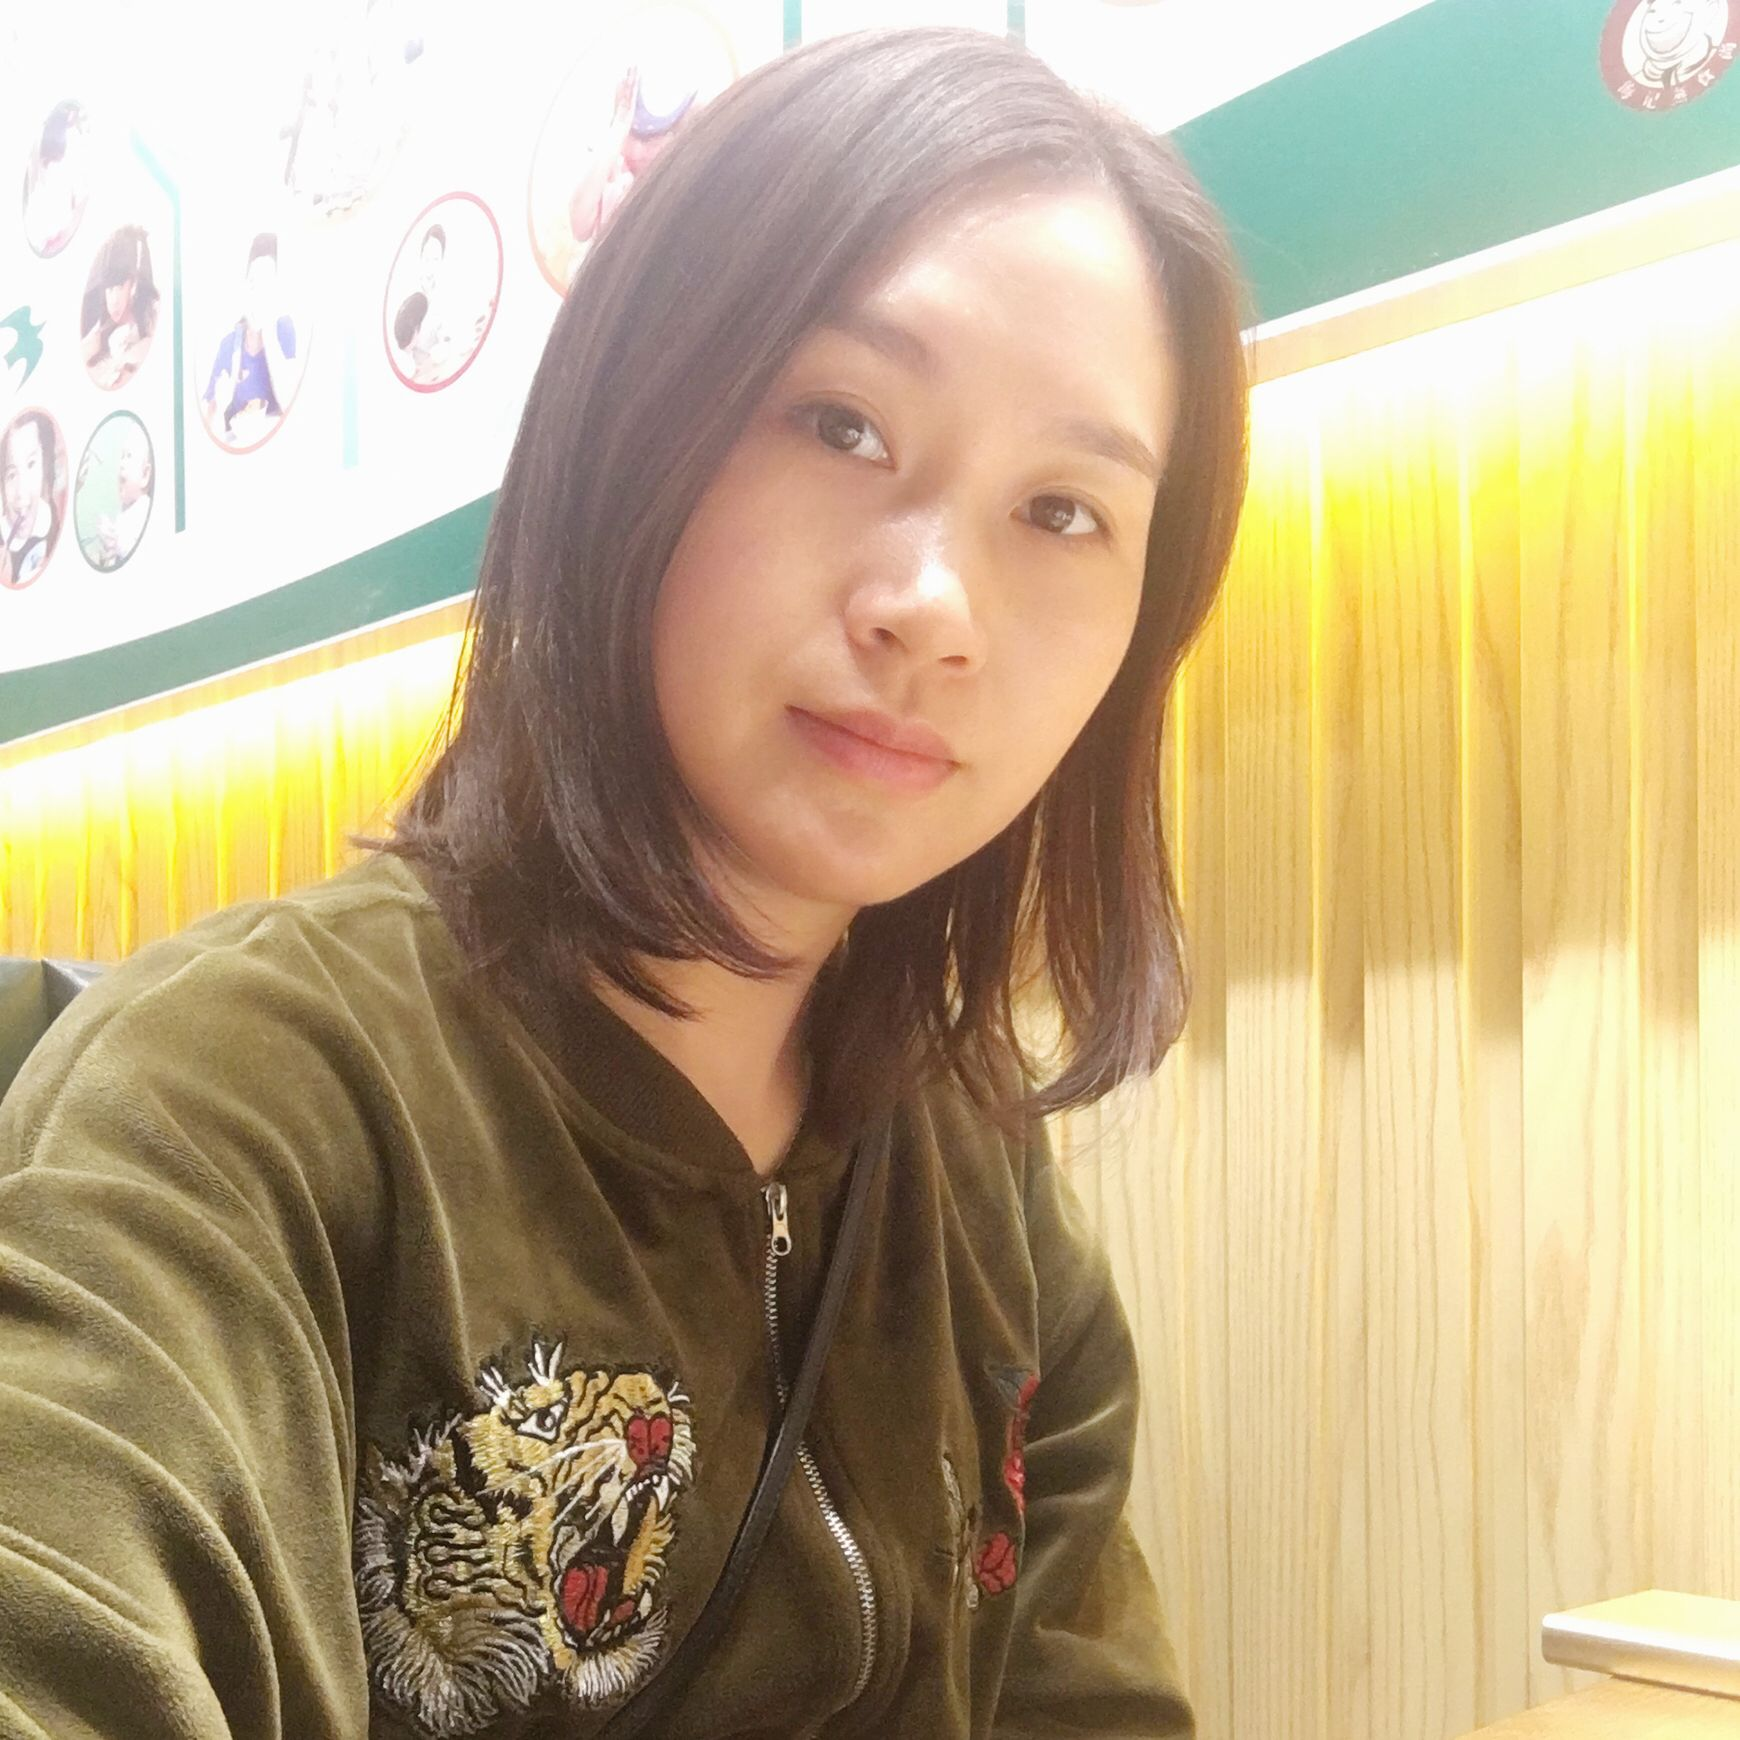 It's me Ruby ling from Dragonworth TV box company | Android